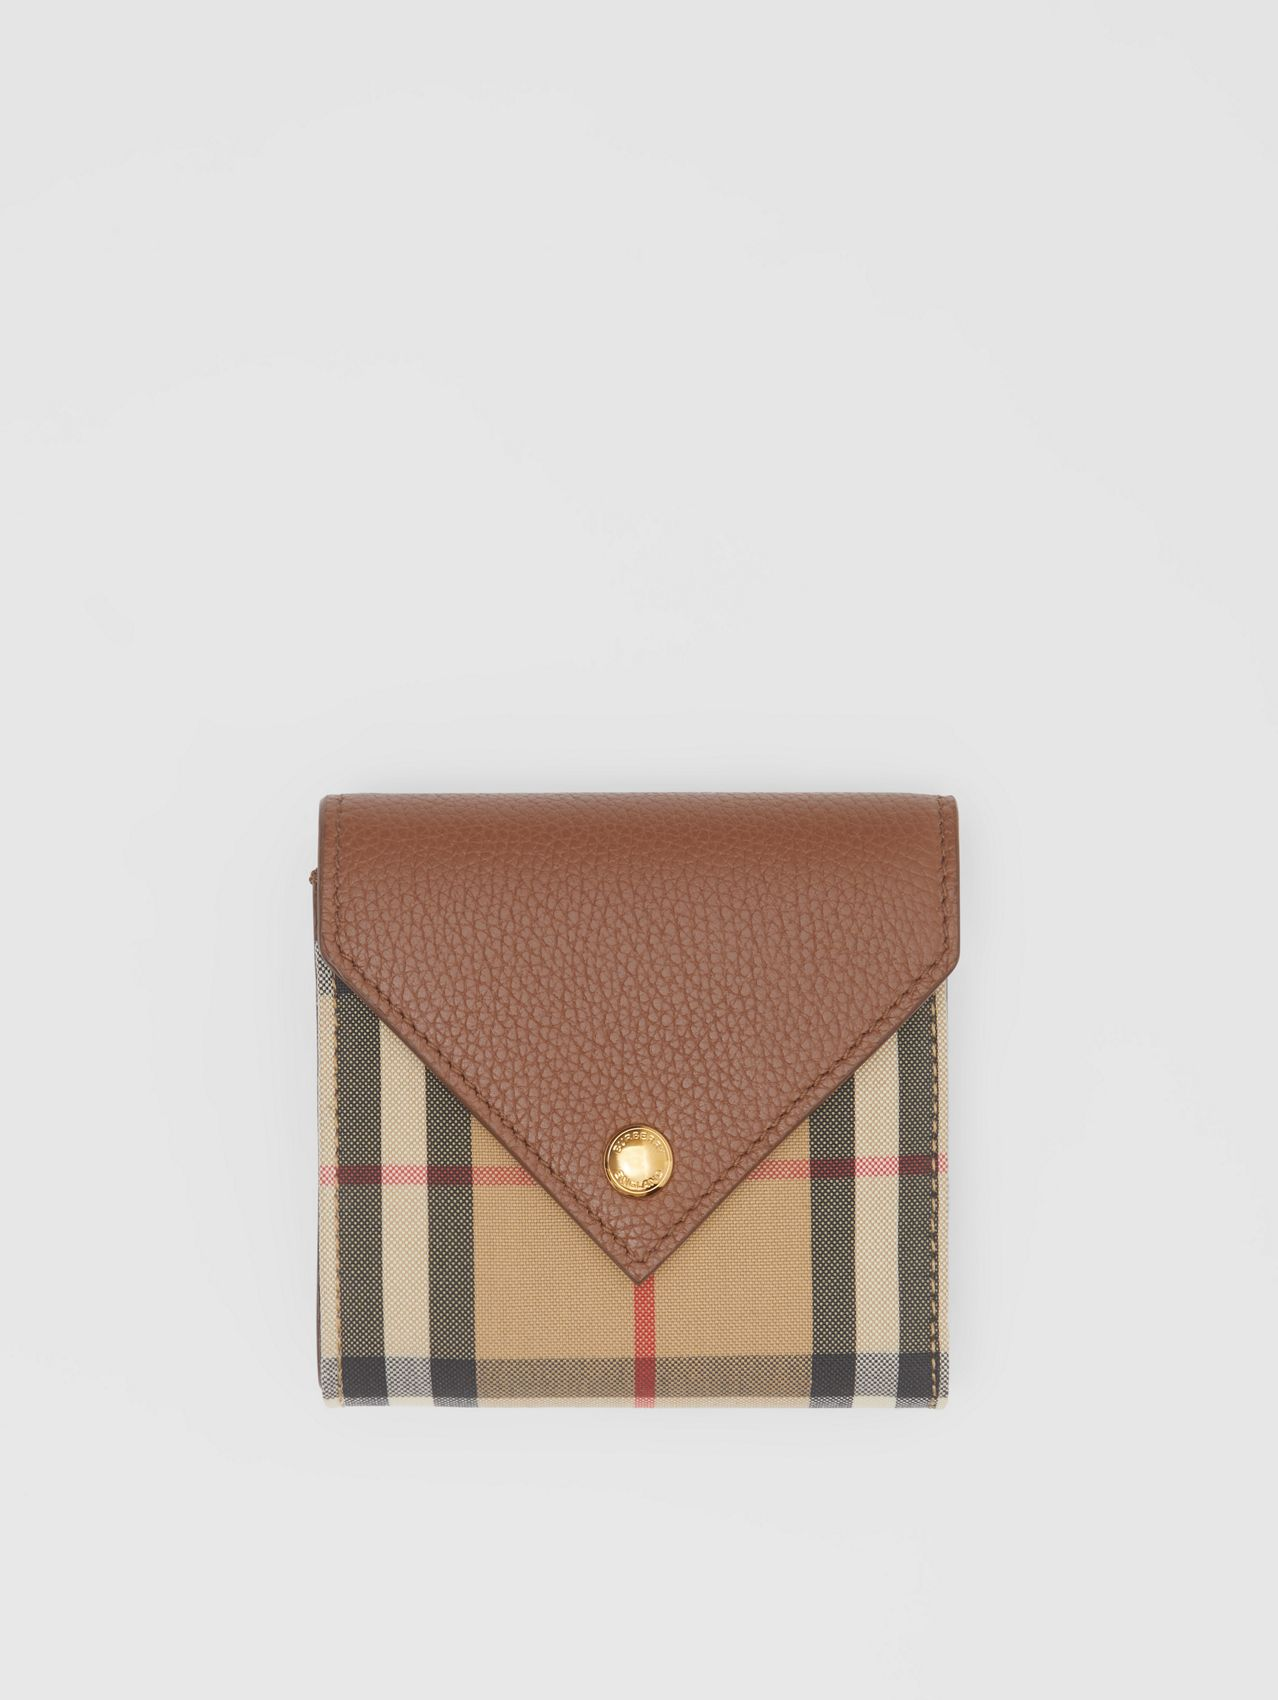 Vintage Check and Grainy Leather Folding Wallet in Tan